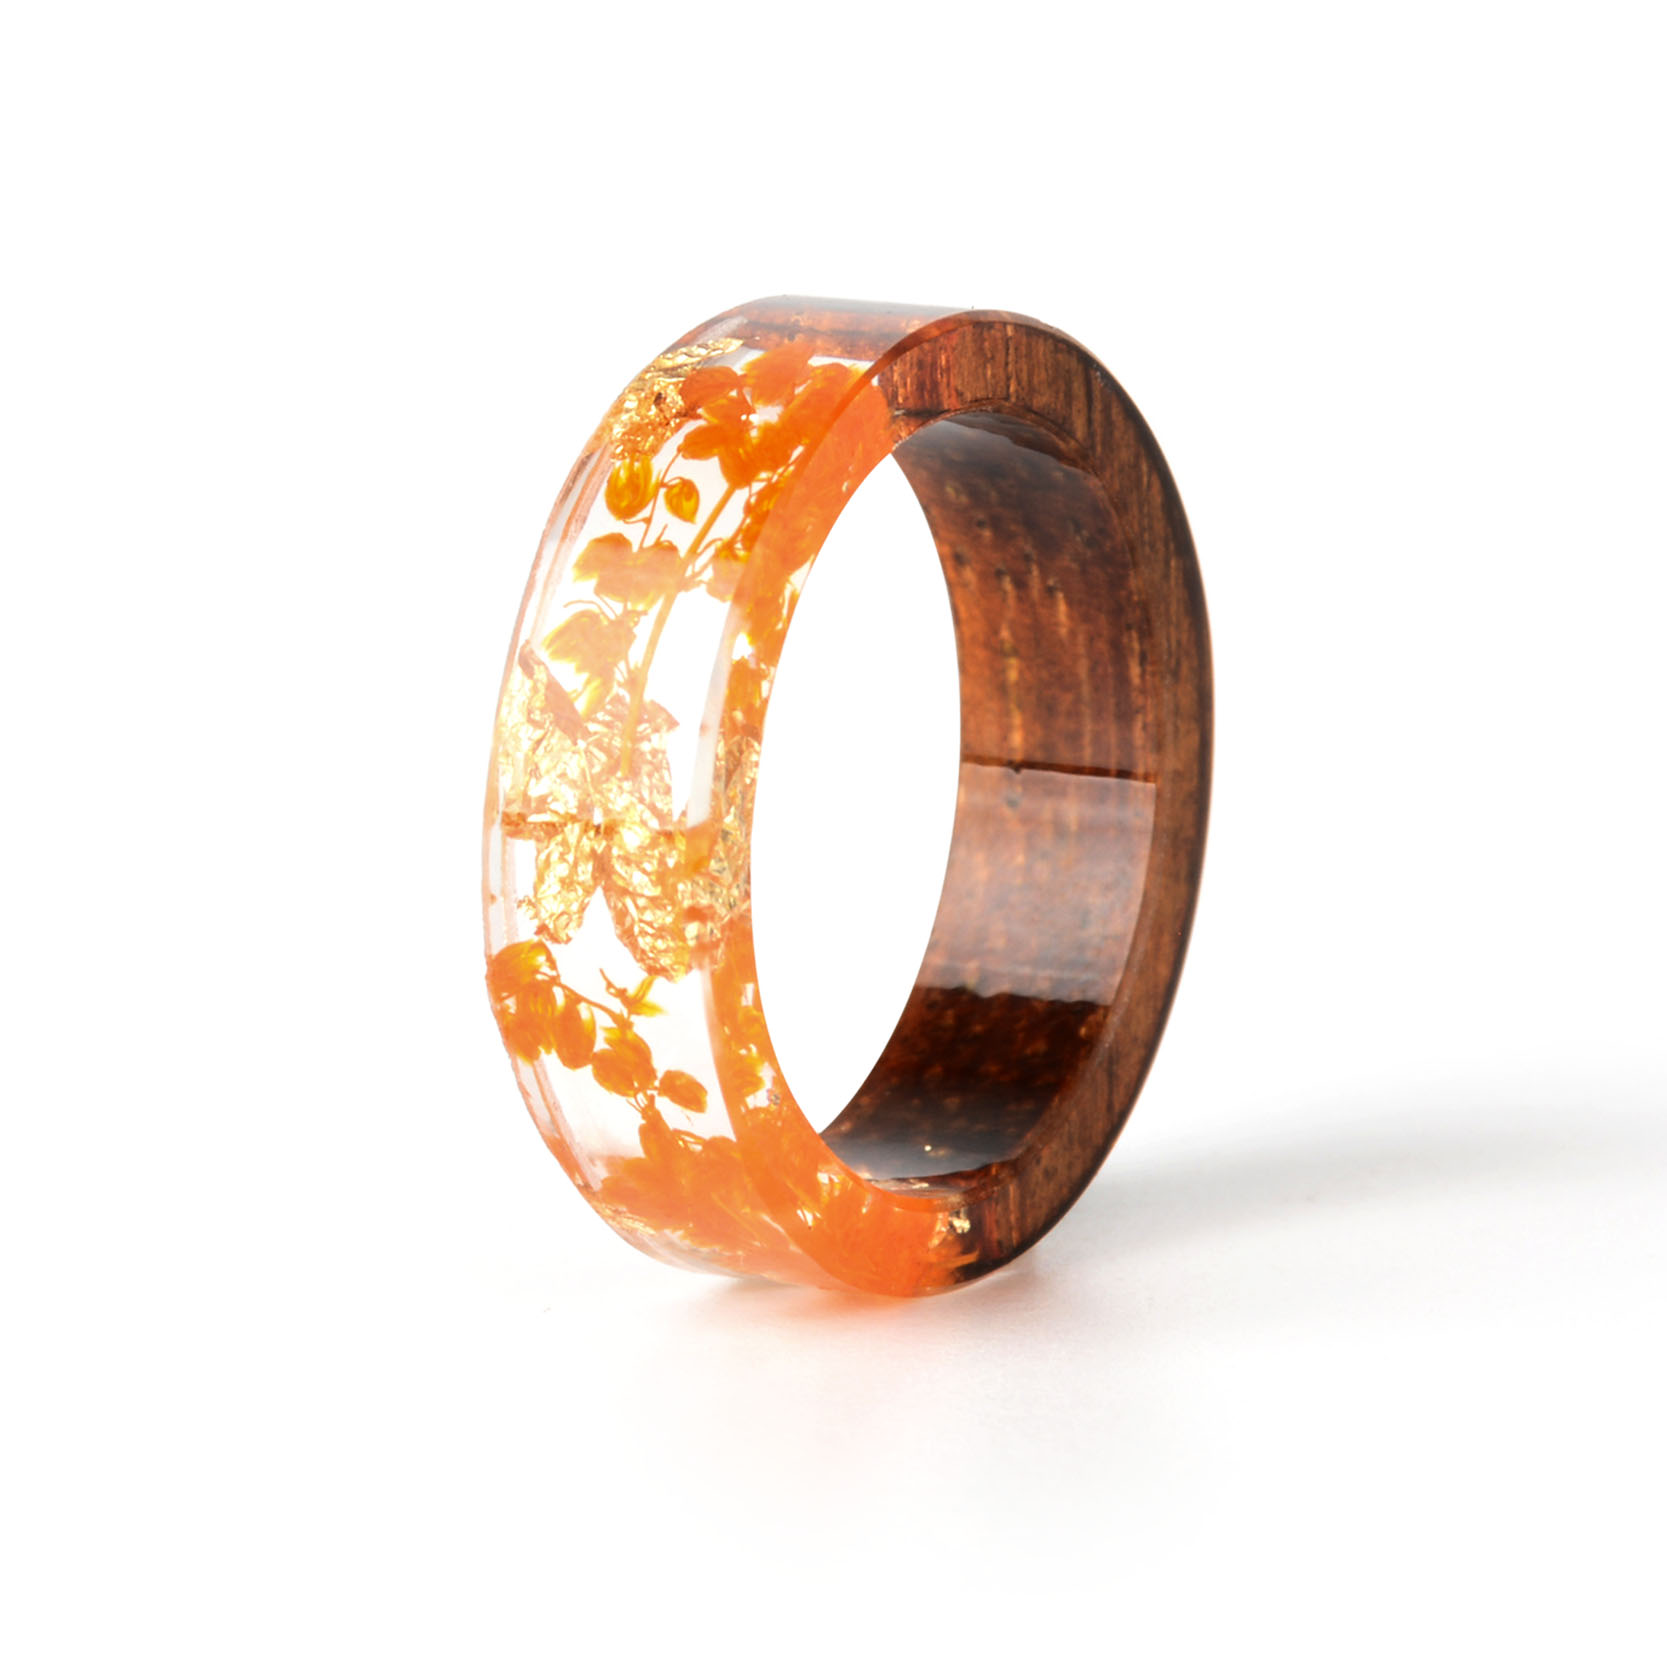 Handmade Wood Resin Ring Many Styles 22